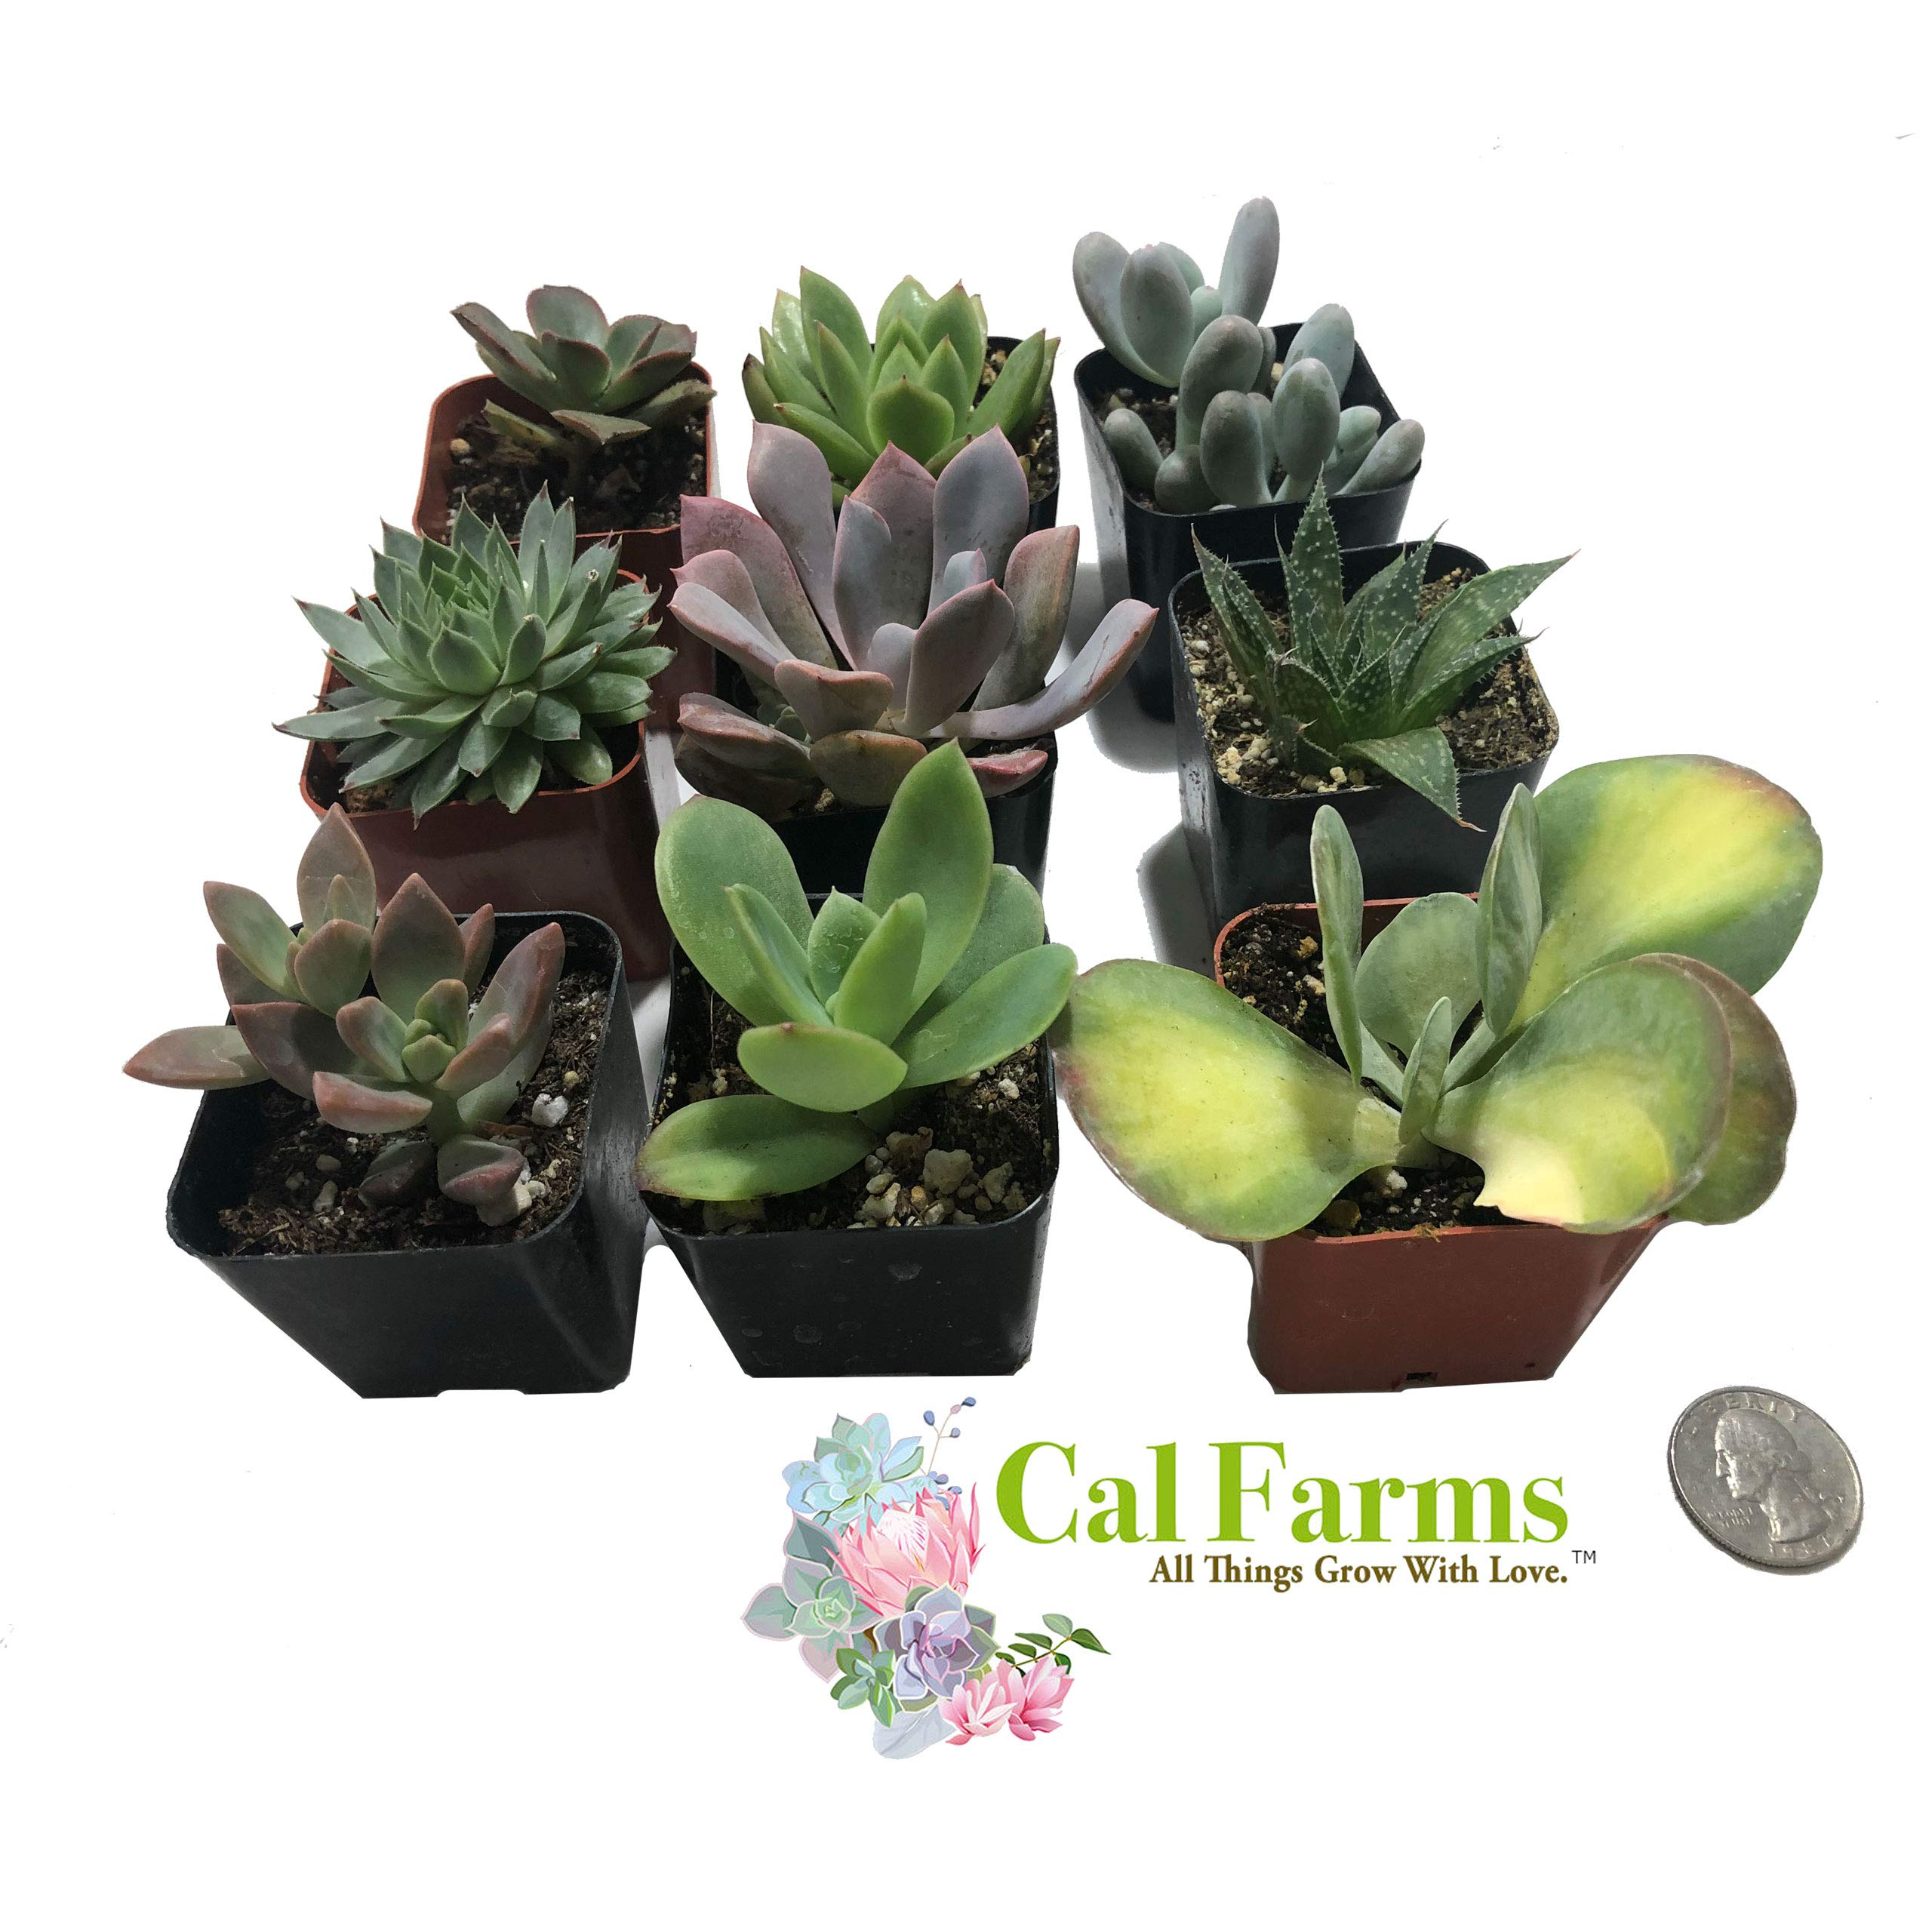 CAL Farms 2'' Beautiful Assorted Variety Succulents for Weddings or Party Favors or Succulent Gardens (Pack of 9) No Two Alike by CAL Farms